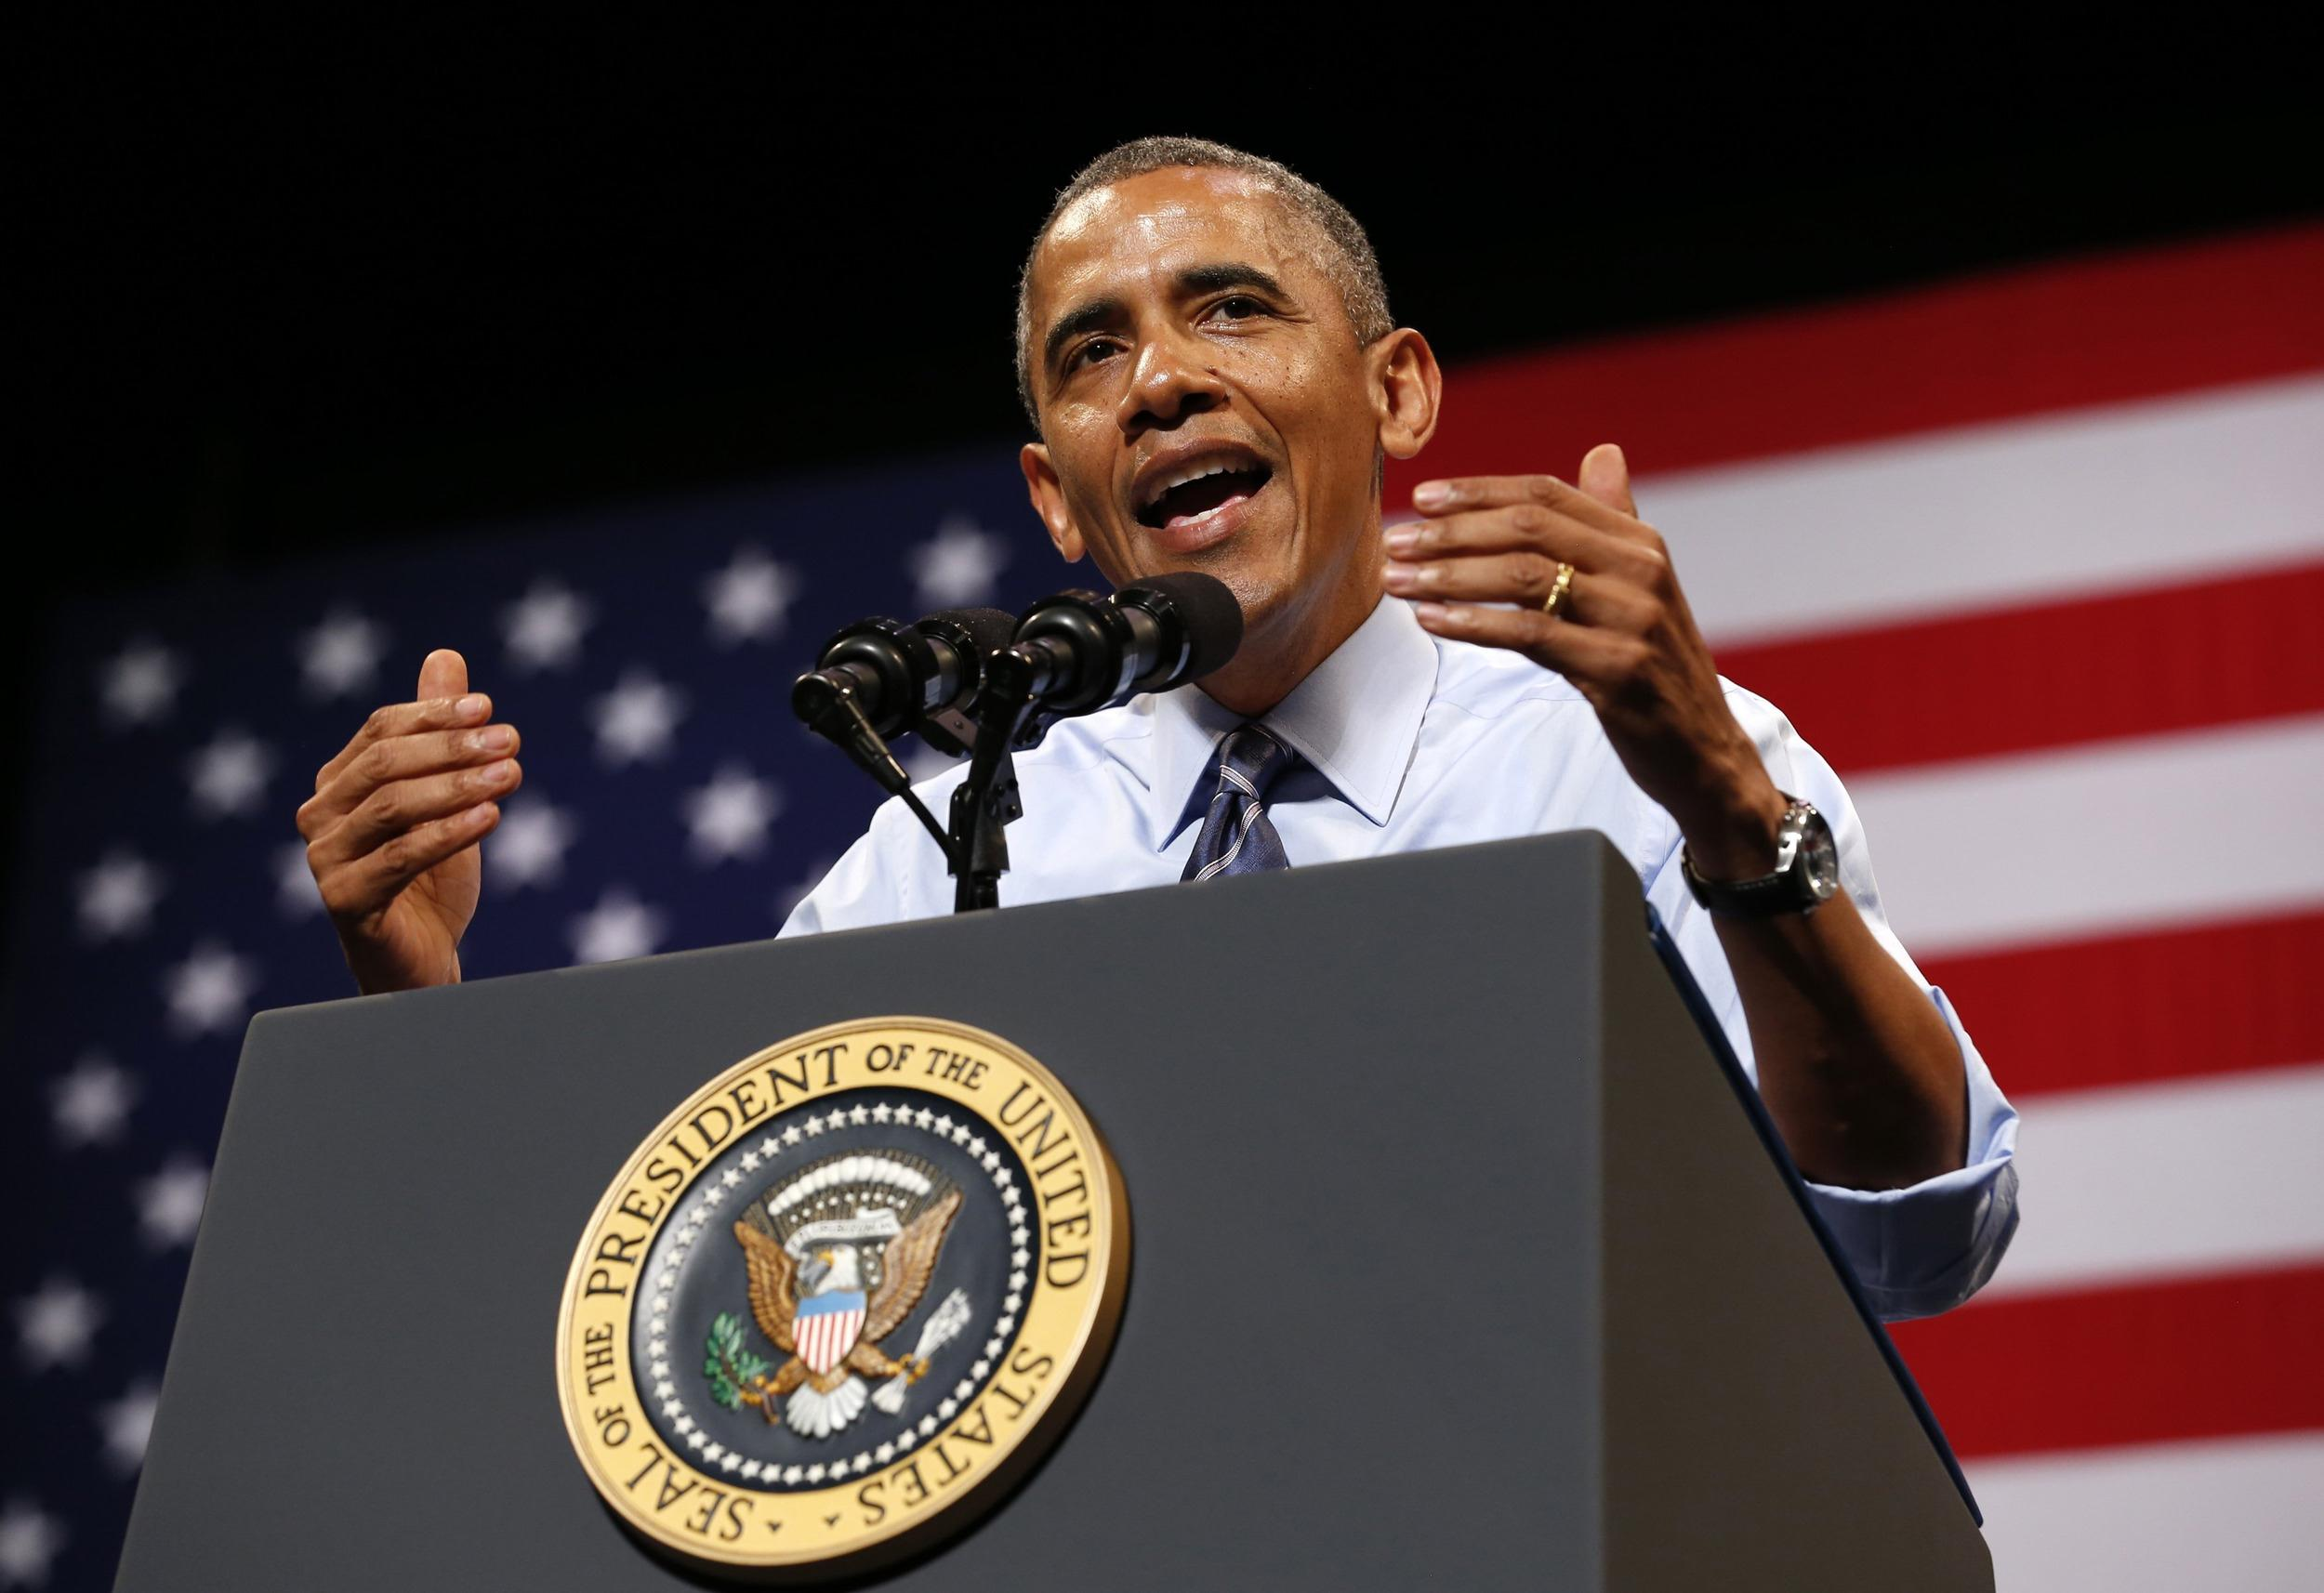 Image: Obama speaks about the economy in Austin, Texas